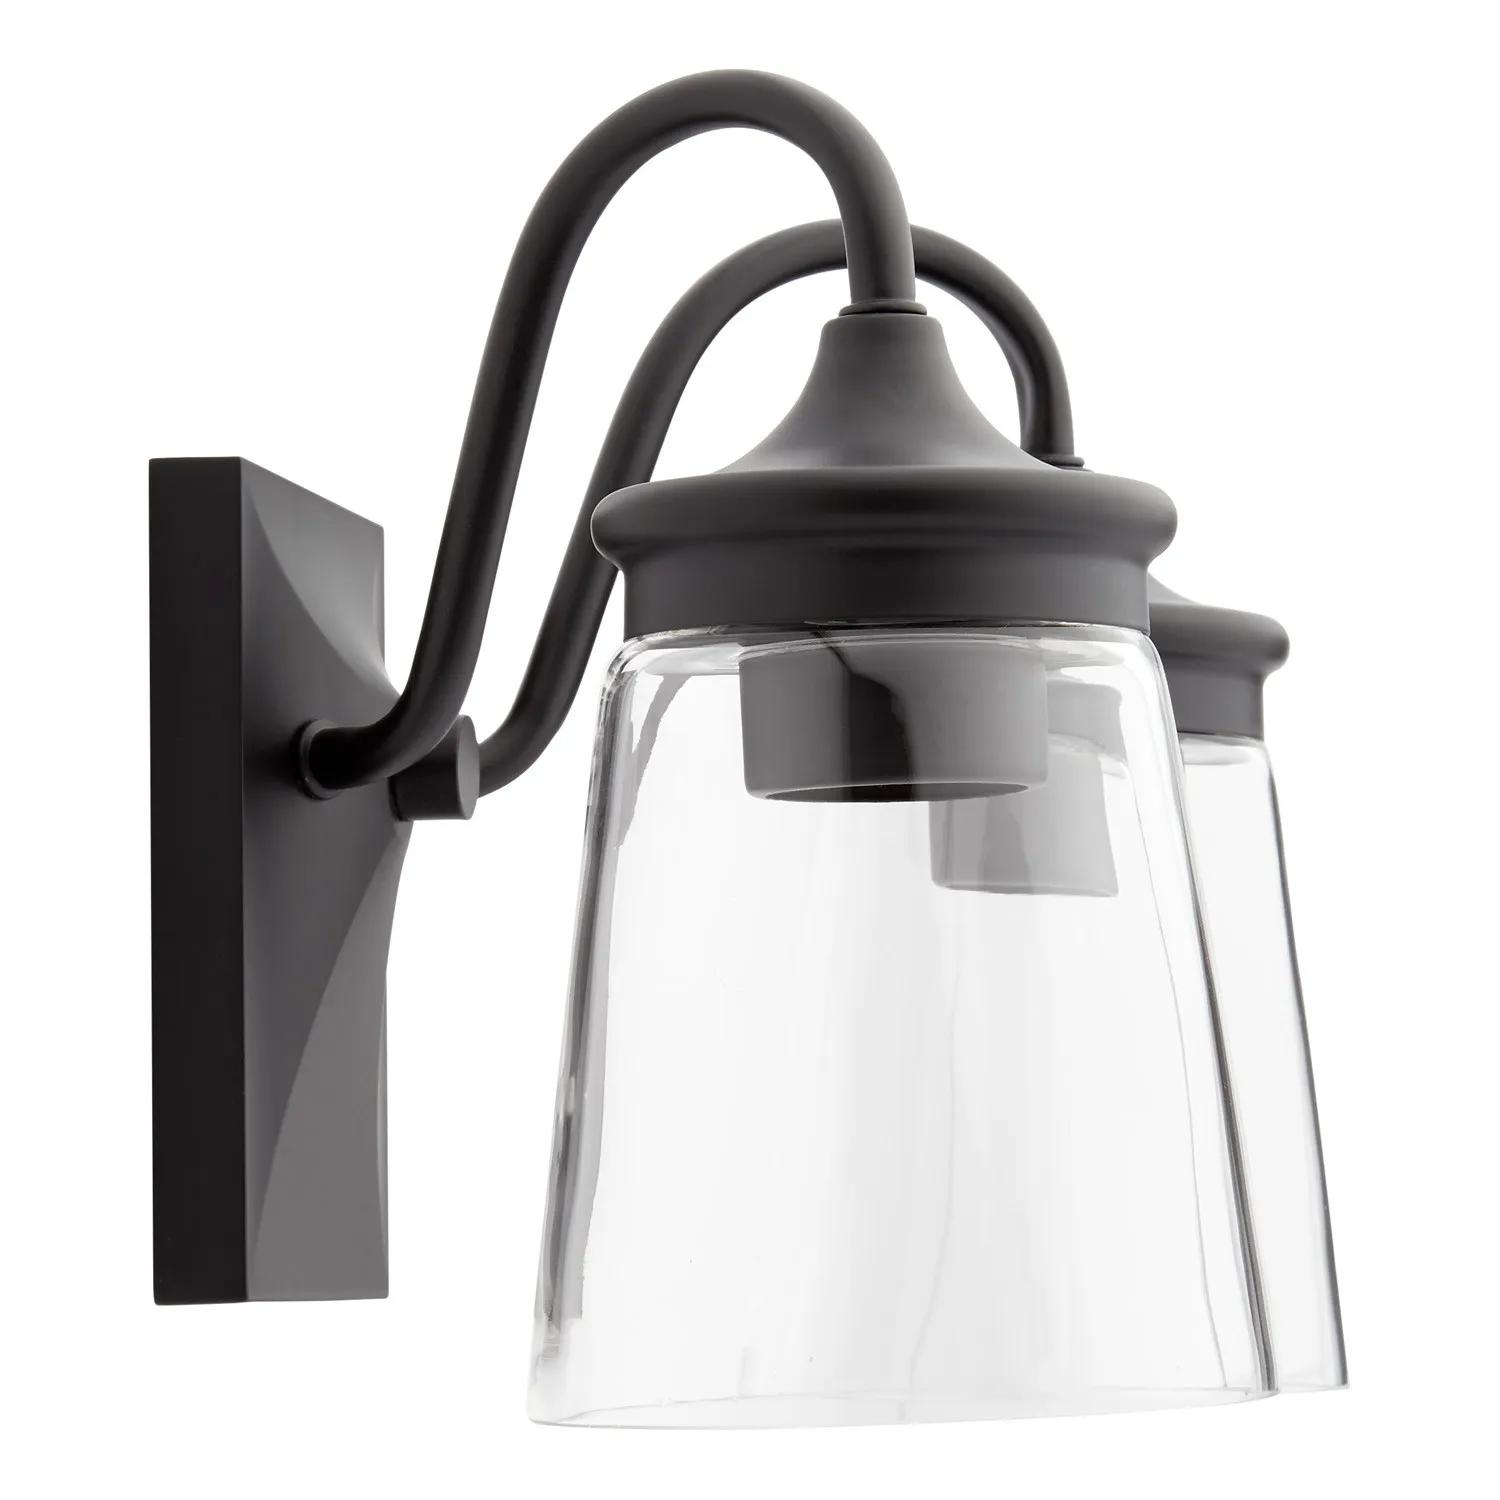 La Maida 2 Light Vanity Light Matte Black Bathroom Vanity Lighting Lighting